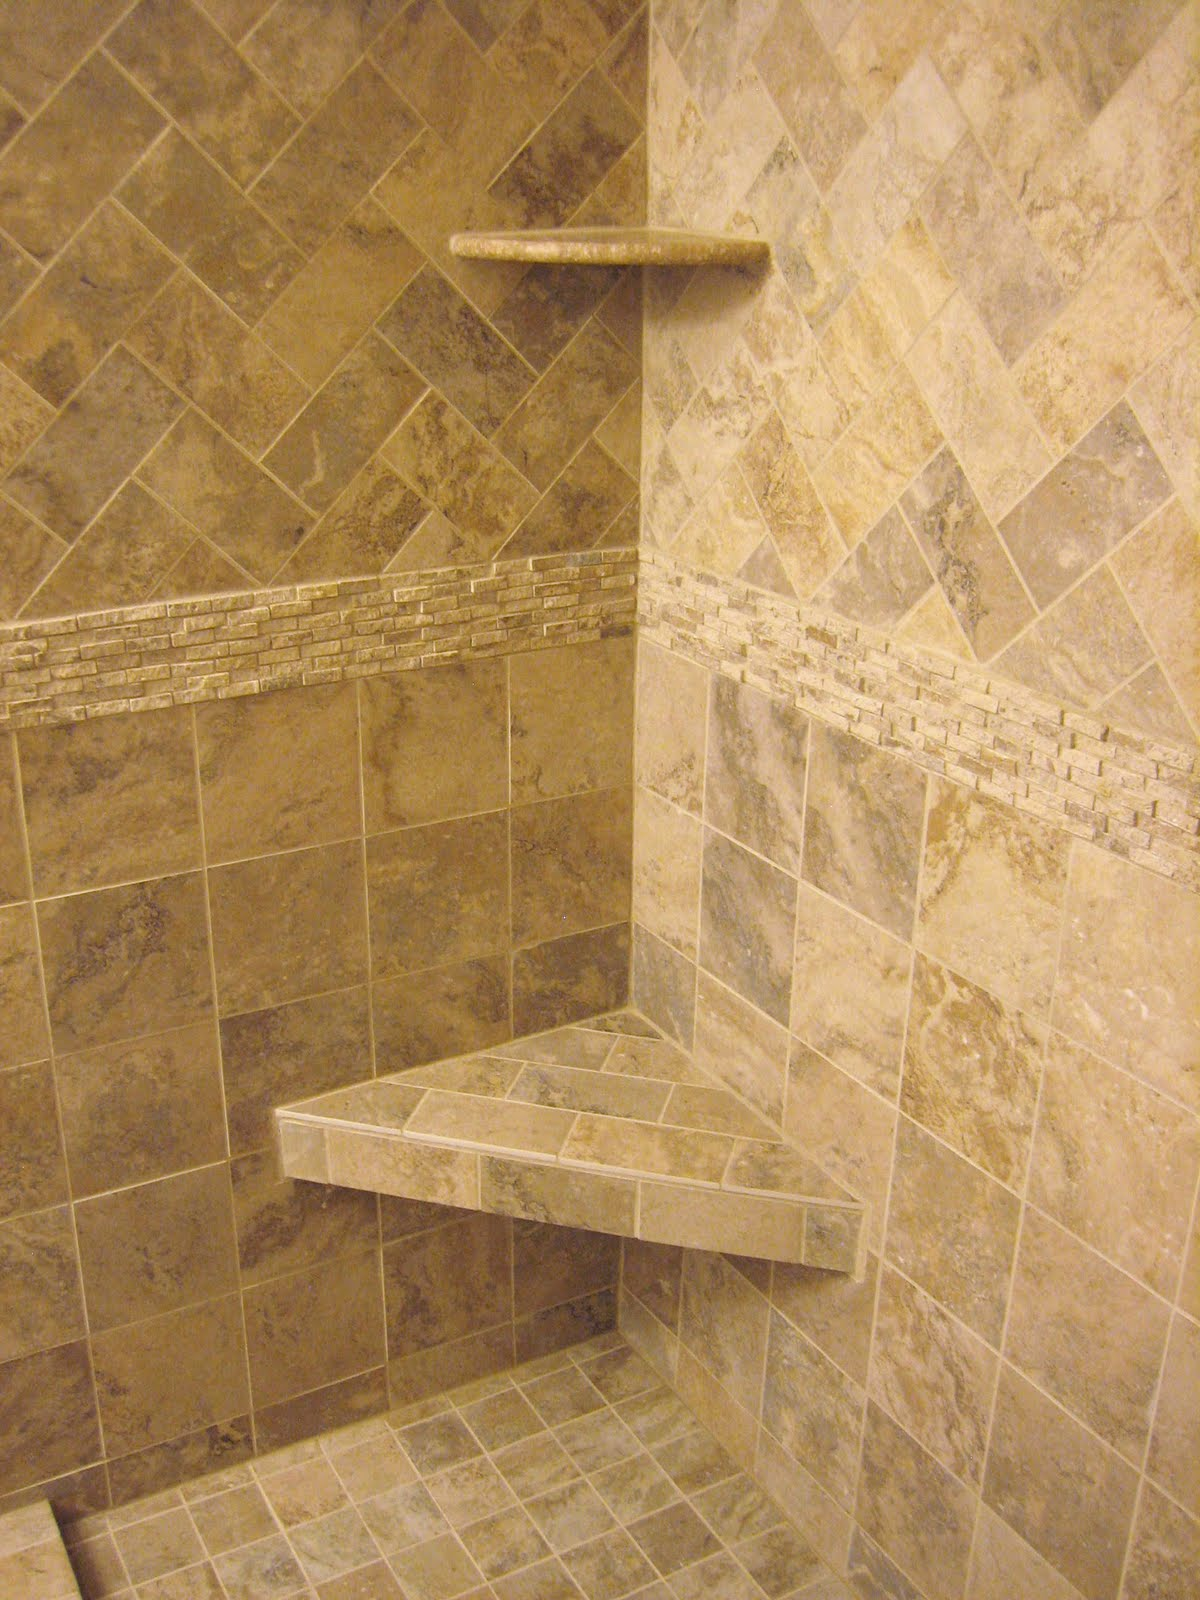 H.Winter Showroom Blog: Luxury Master Bath Remodel: Athena